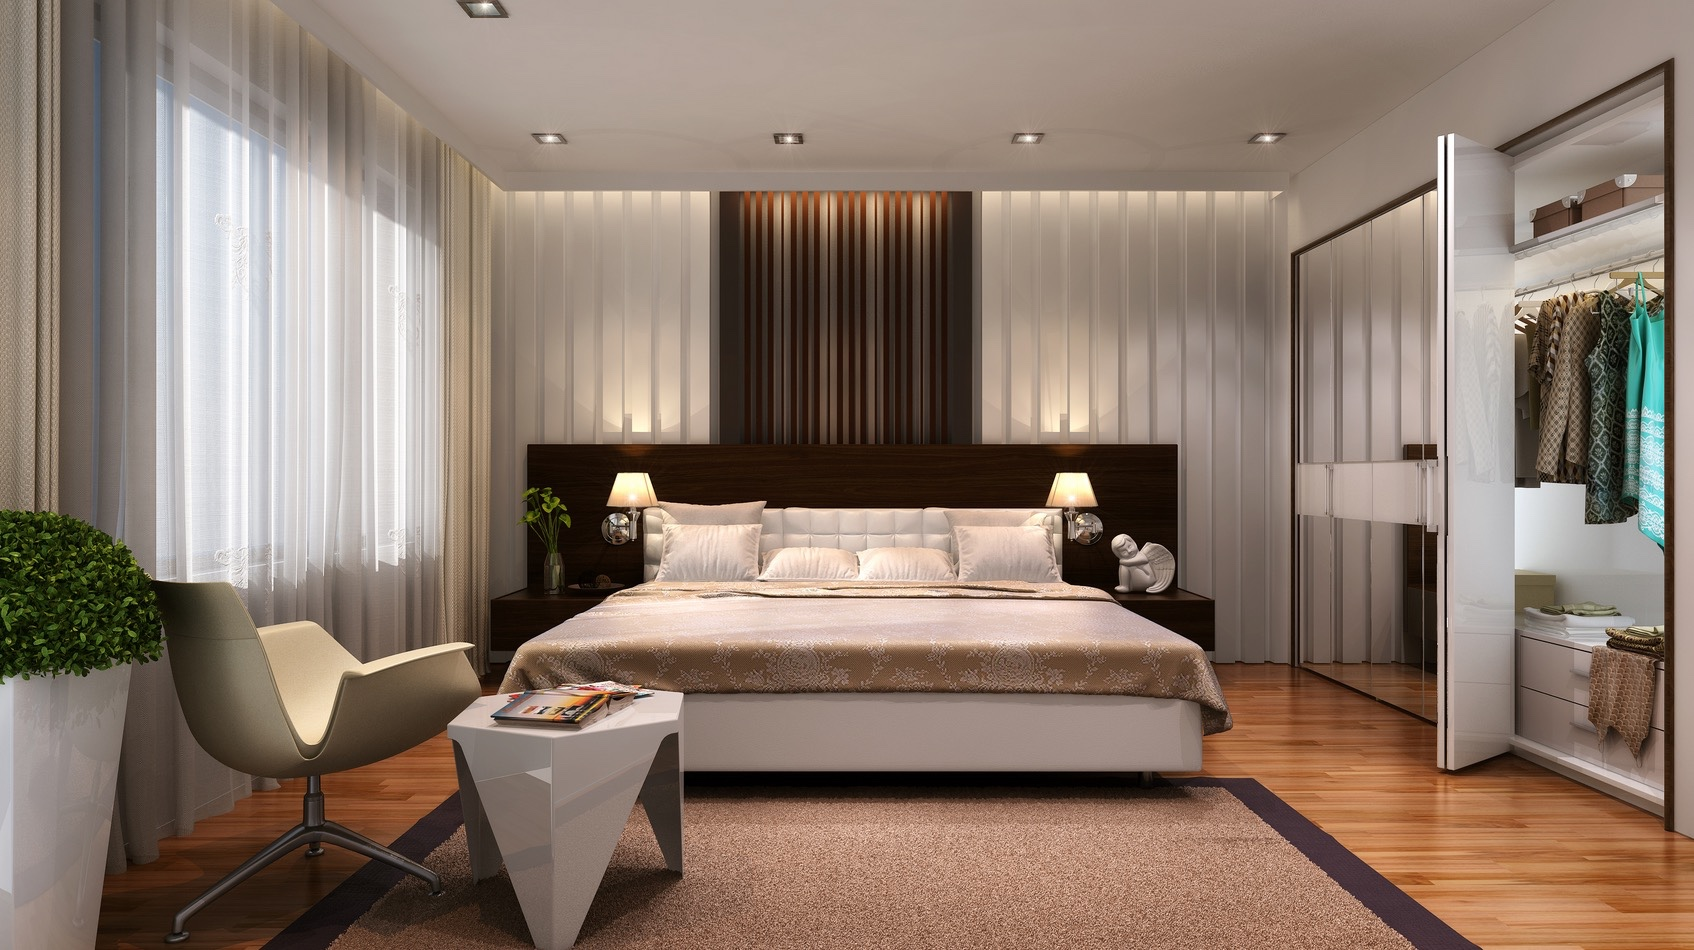 21 cool bedrooms for clean and simple design inspiration for Modern bedroom